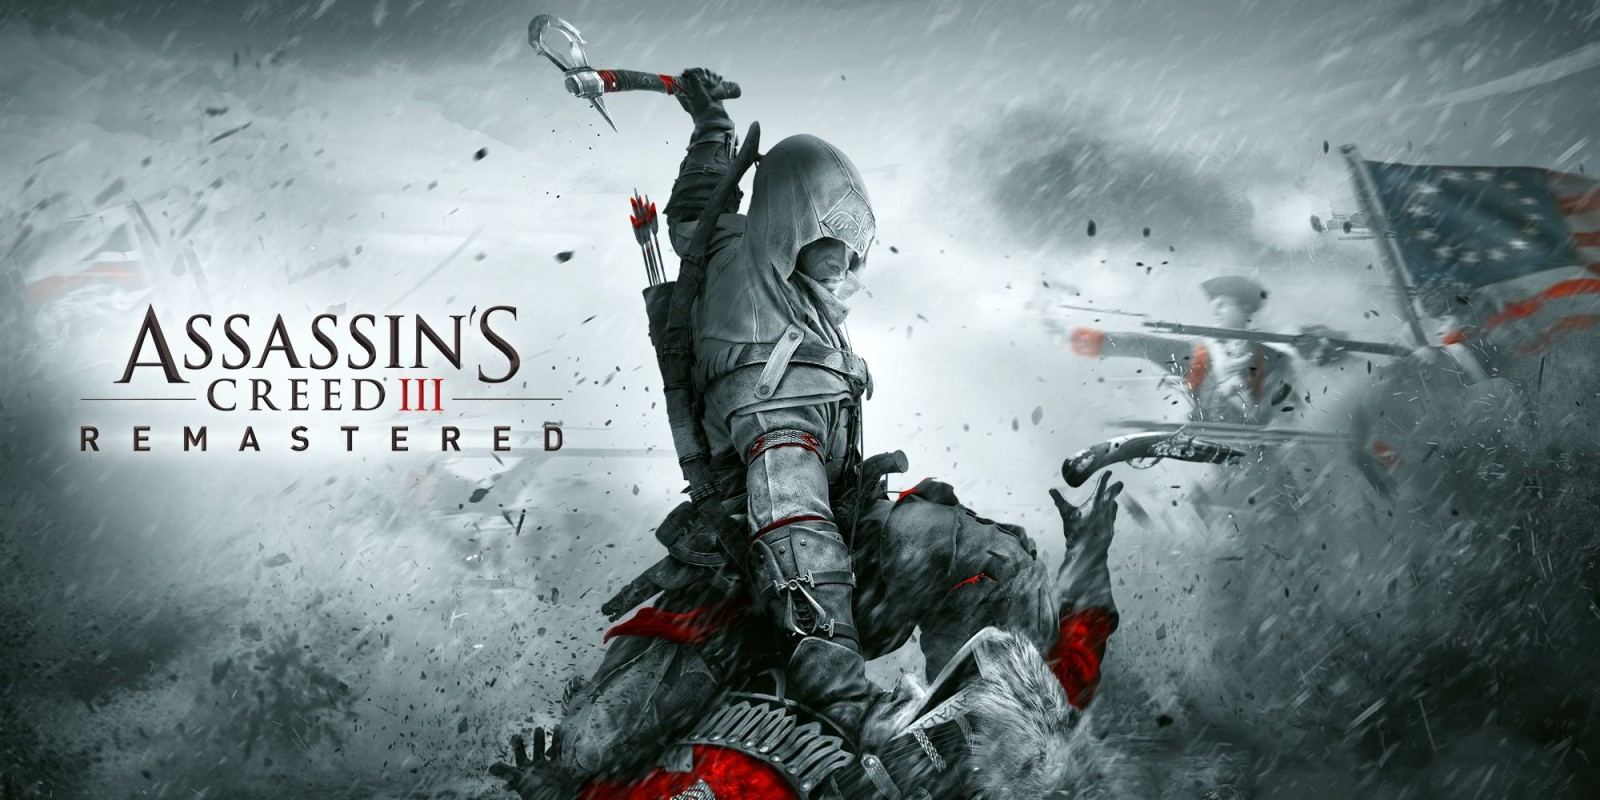 List of All Assassin's Creed Games